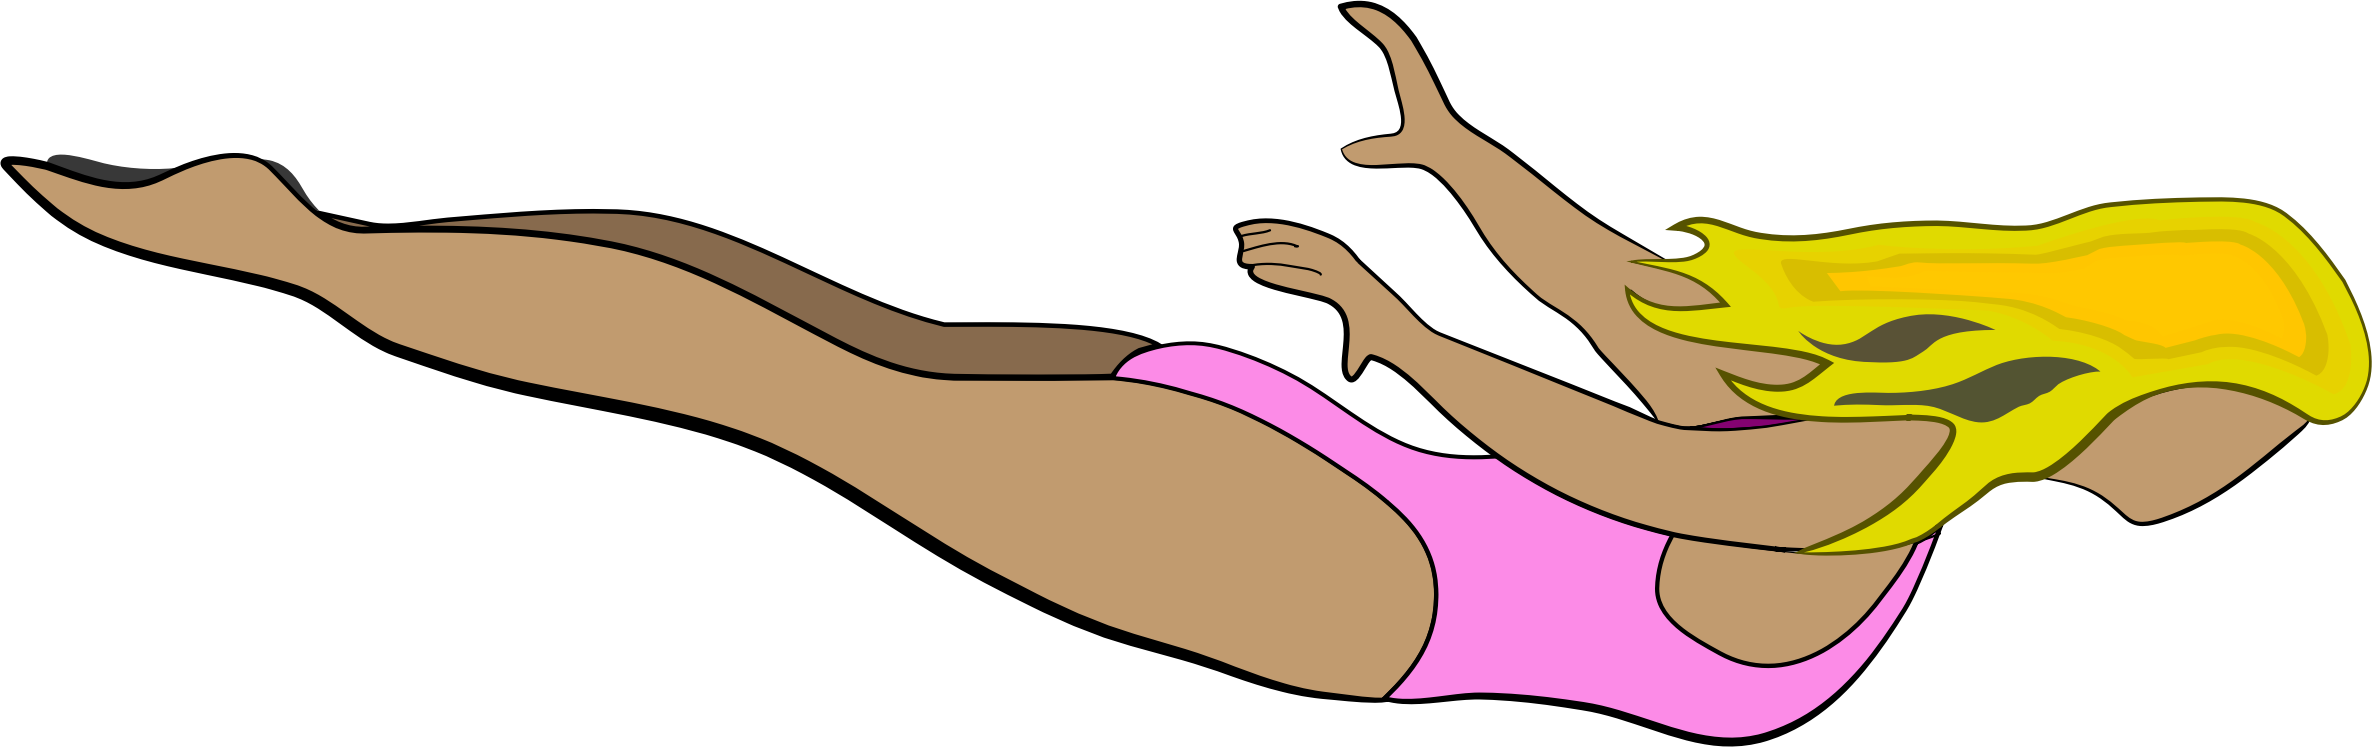 Holy big image png. Diver clipart female